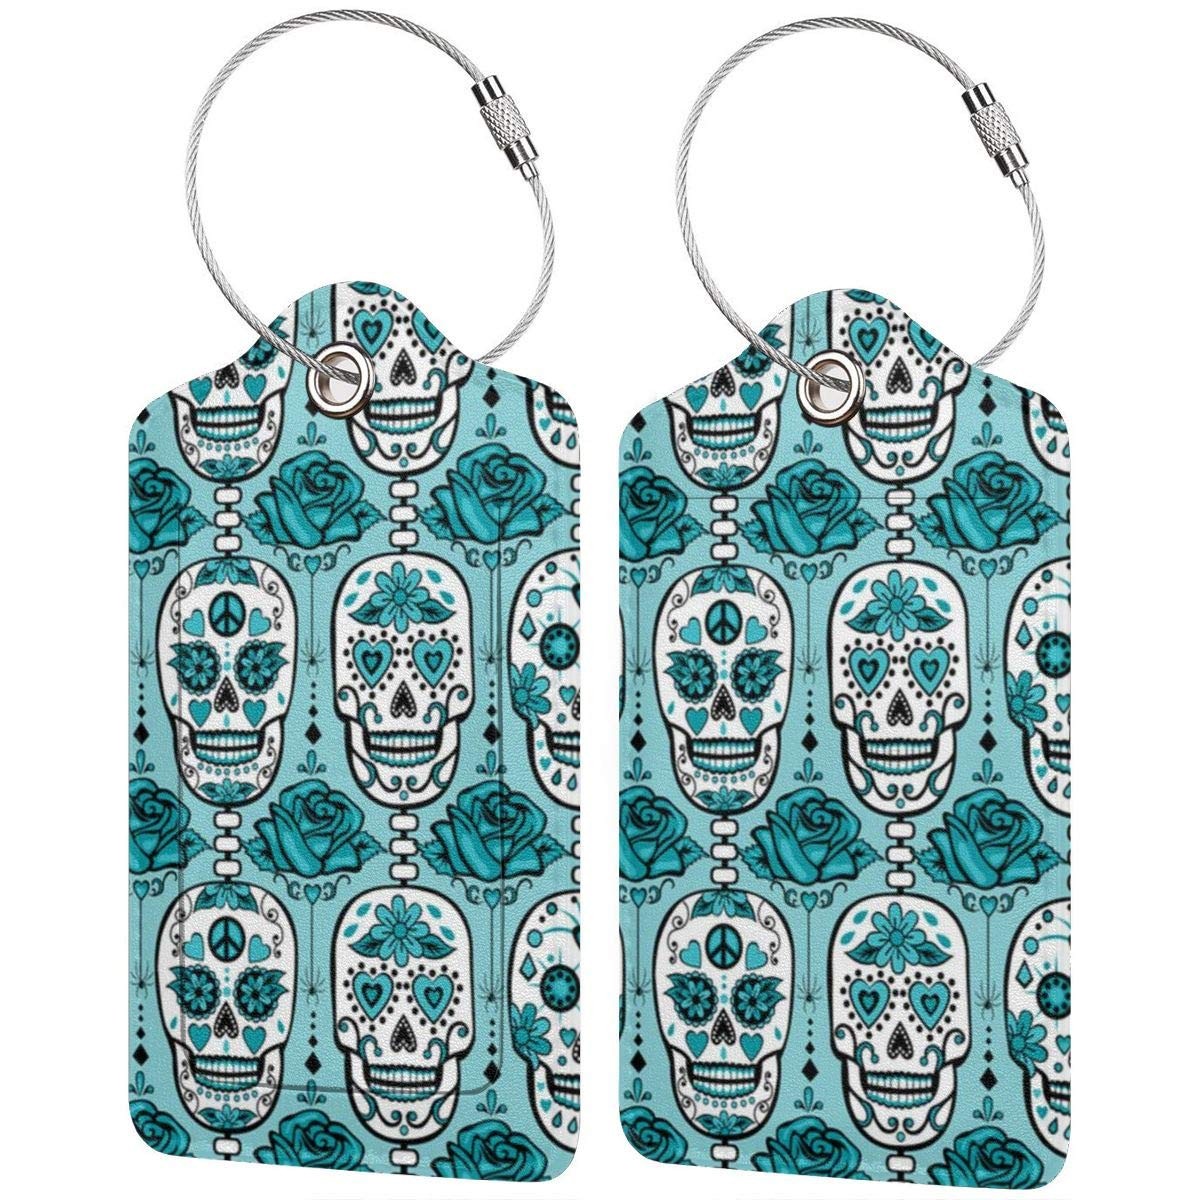 Turquoise Sugar Skulls Luggage Tag Label Travel Bag Label With Privacy Cover Luggage Tag Leather Personalized Suitcase Tag Travel Accessories